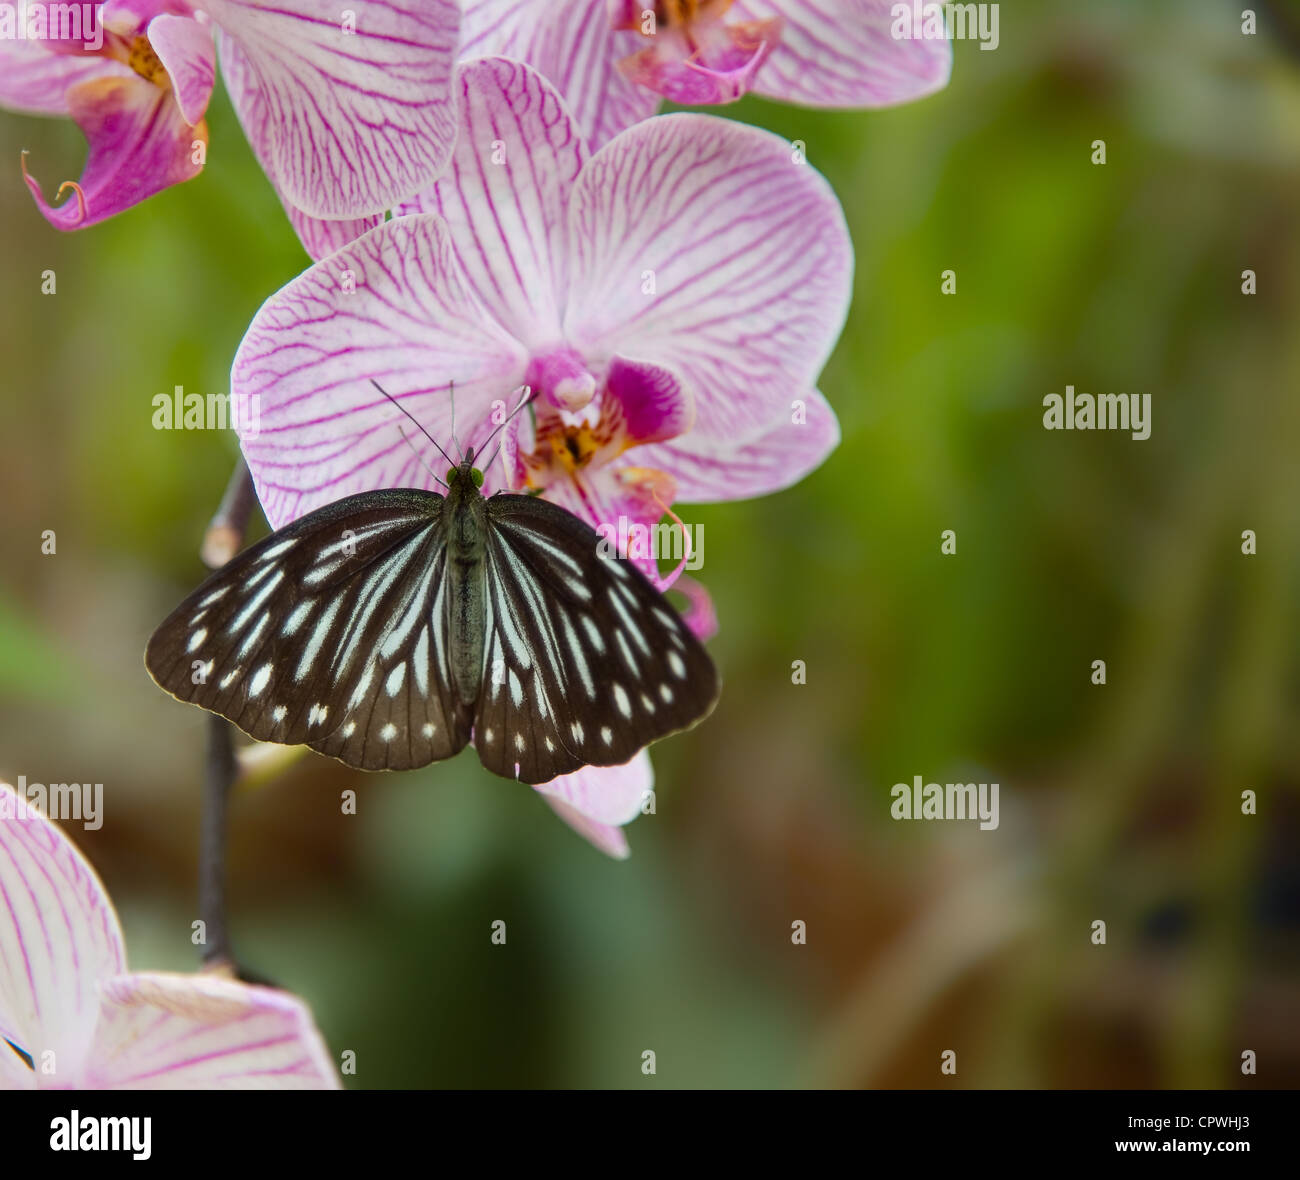 Rare beautiful orchid flower stock photos rare beautiful orchid beautiful rare violet orchid phalaenopsis with butterfly stock image izmirmasajfo